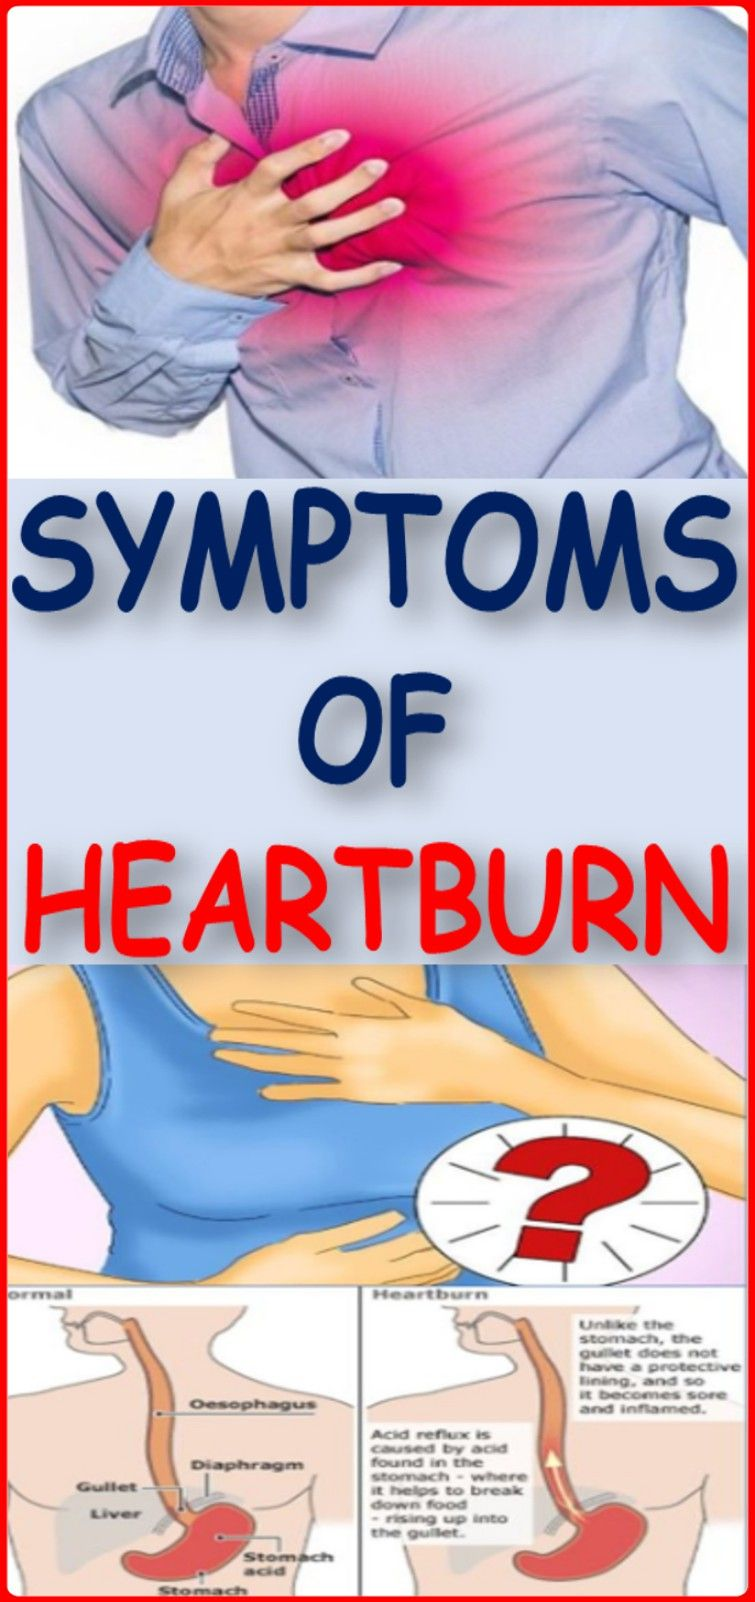 Heartburn affects over 60 million Americans every week and